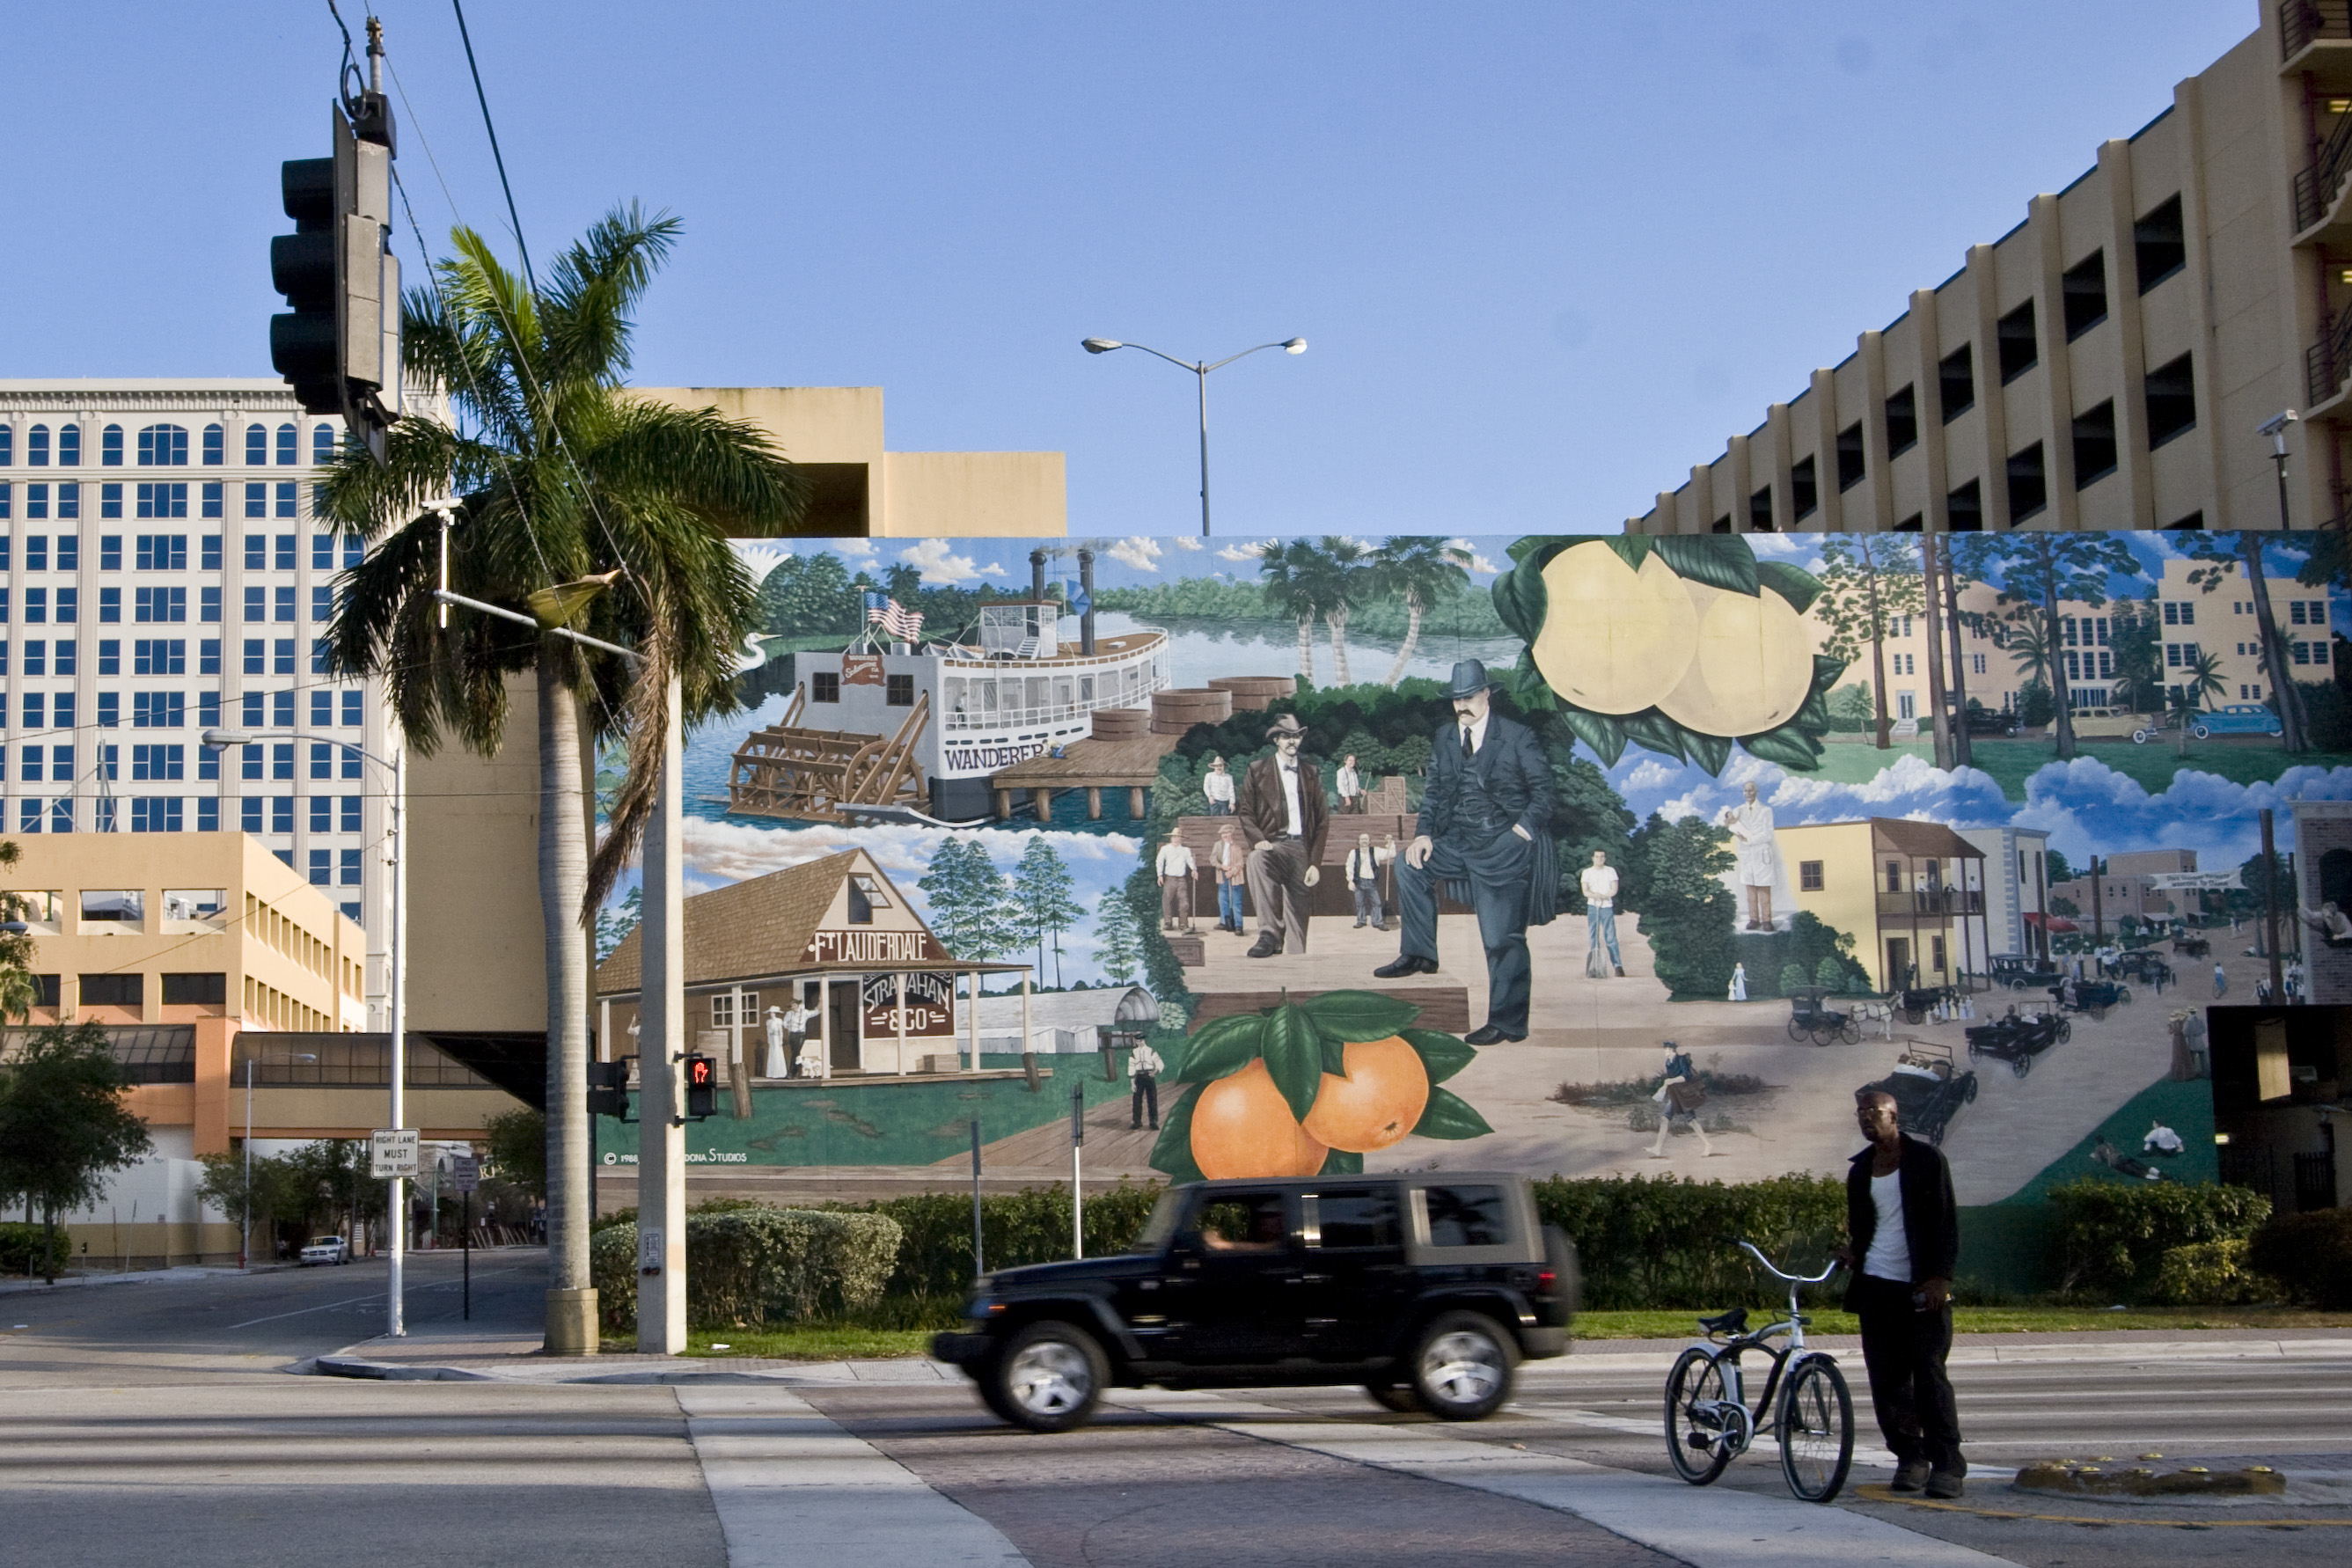 Image of the Broward County History Mural in Fort Lauderdale